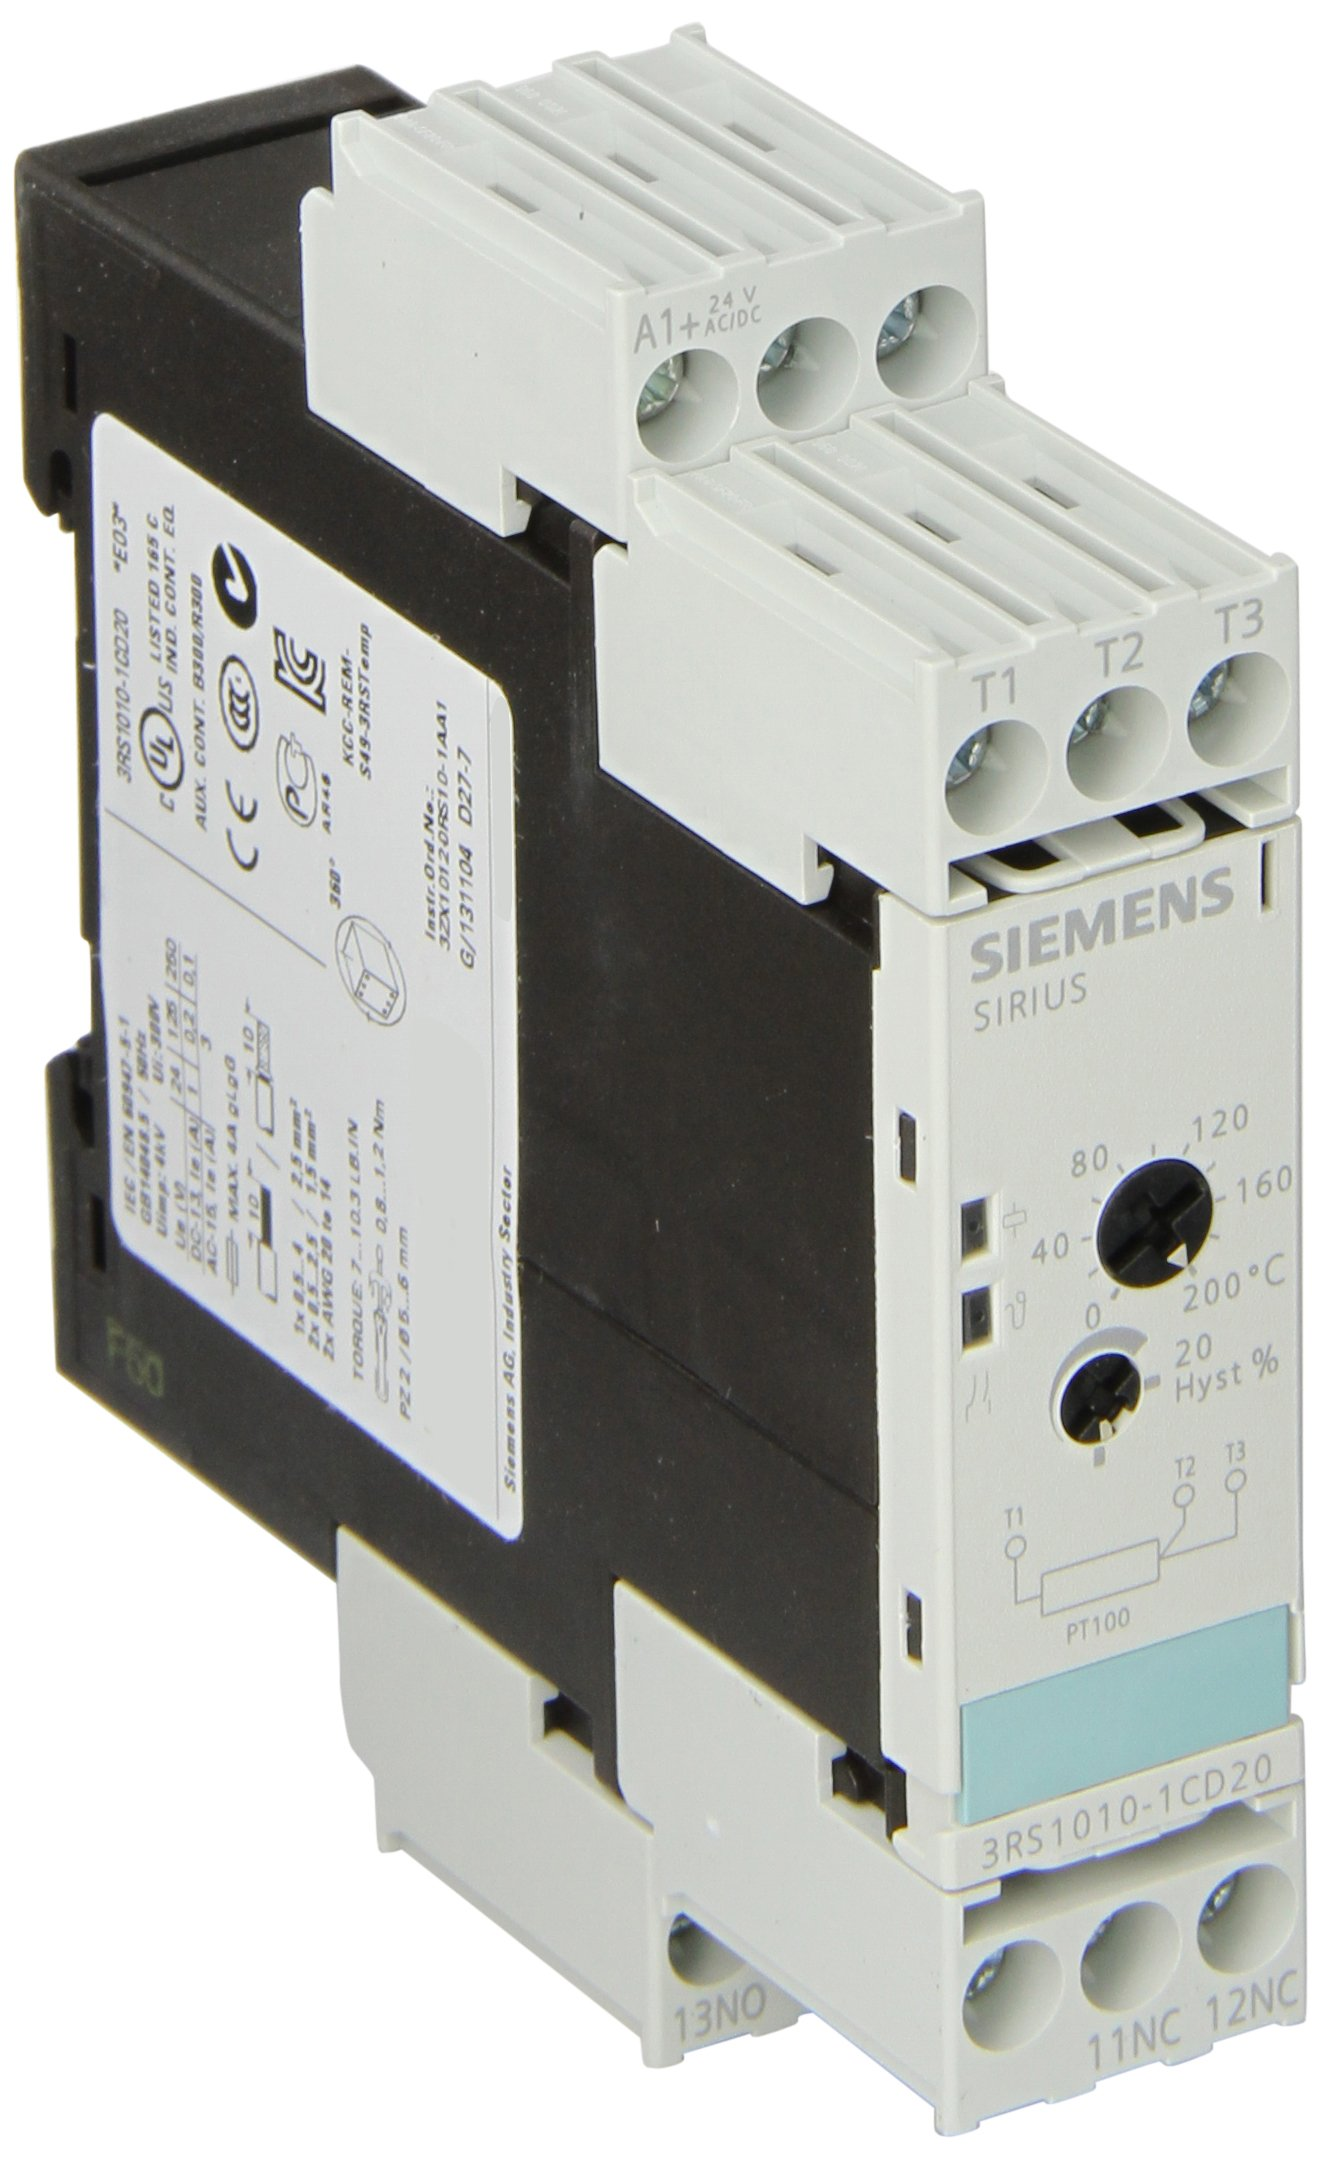 Siemens OFD-DFSB-120 Basic Plug Timer Relay, Square Base, DPDT Contacts, 12A Contact Rating, 120VAC/DC Coil Voltage, 0.1S-10h Time Range, D and E Function